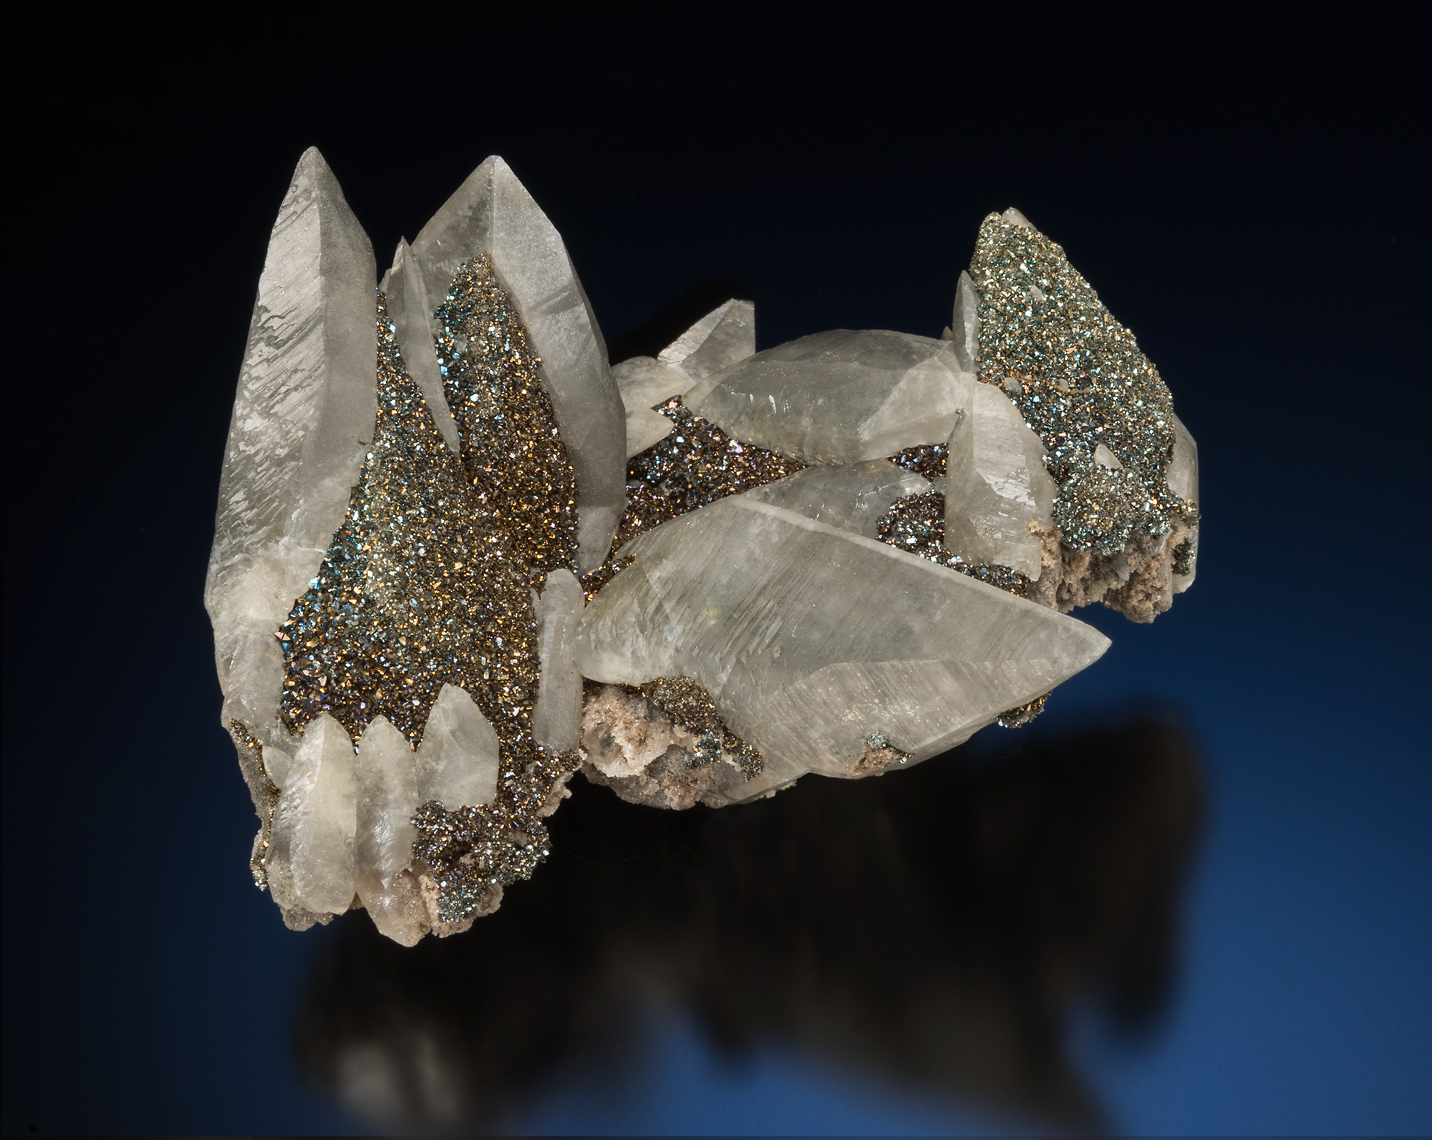 Calcite, Chalcopyrite/Marcasite - Brushy Creek Mine, Viburnum Trend District, Missouri.